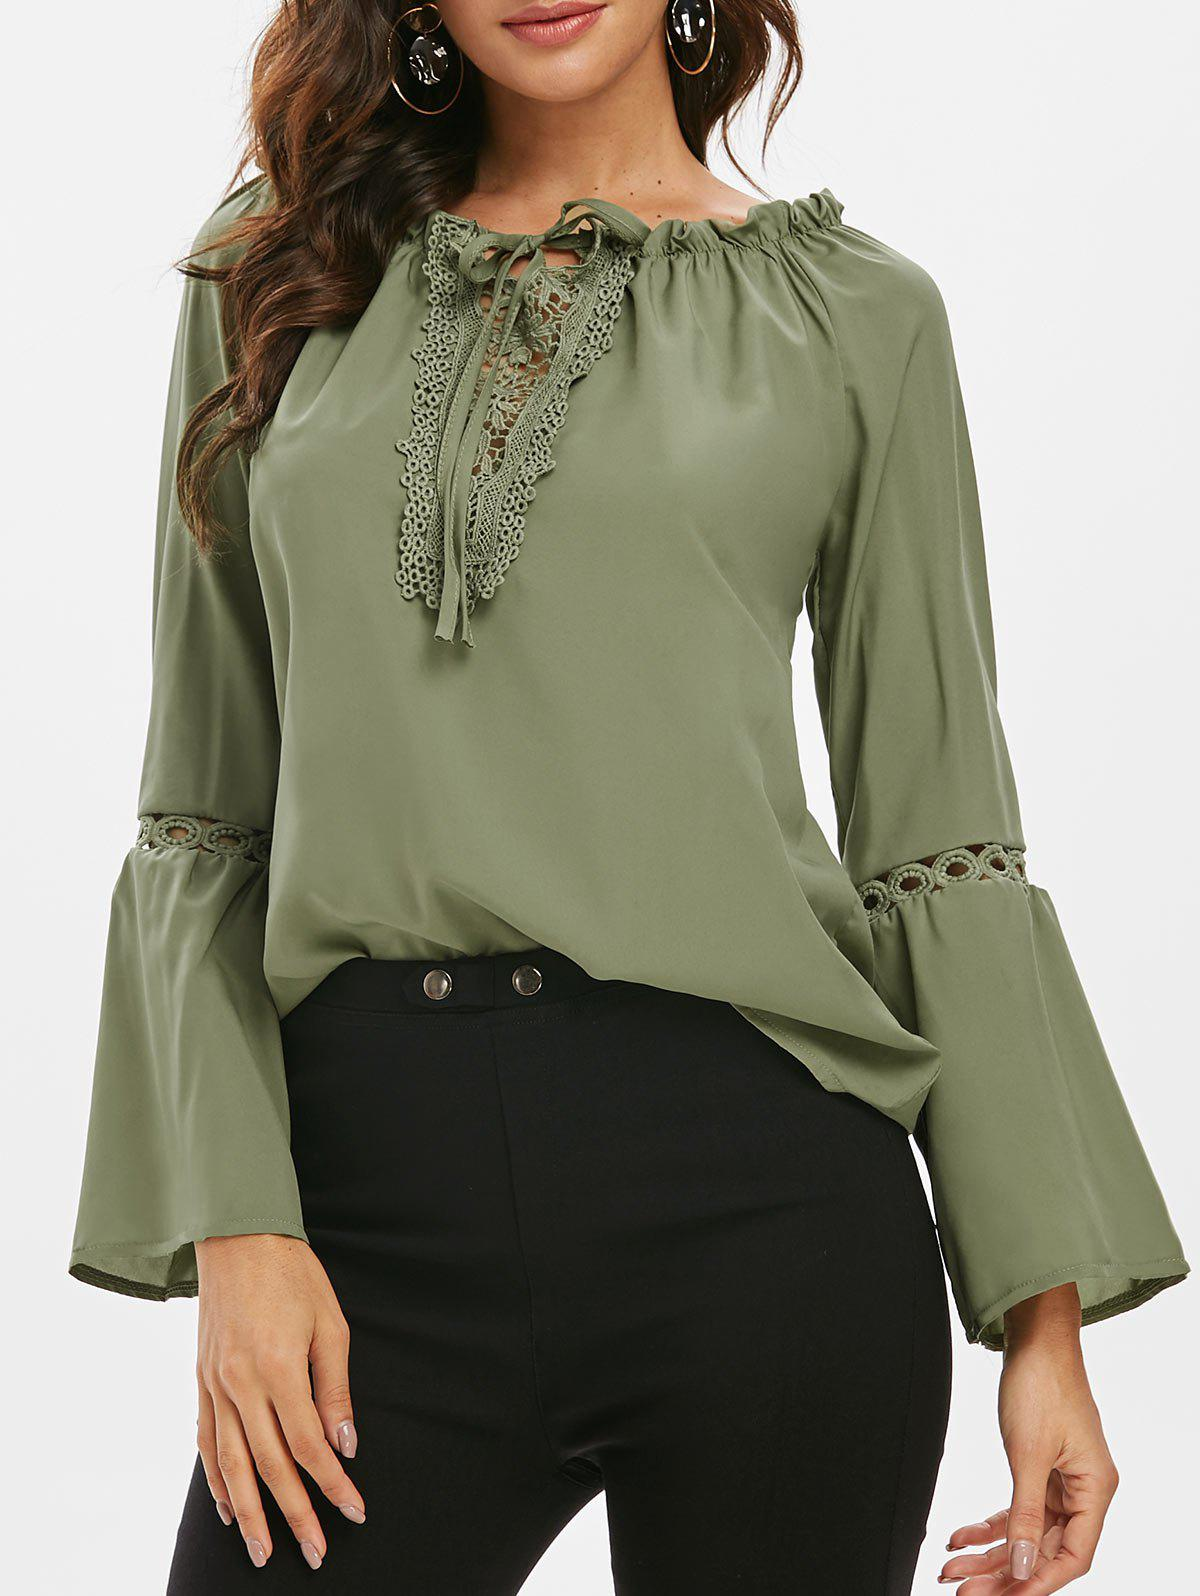 532f332c0aacac 27% OFF] Guipure Lace Panel Frilled Long Sleeve Blouse | Rosegal